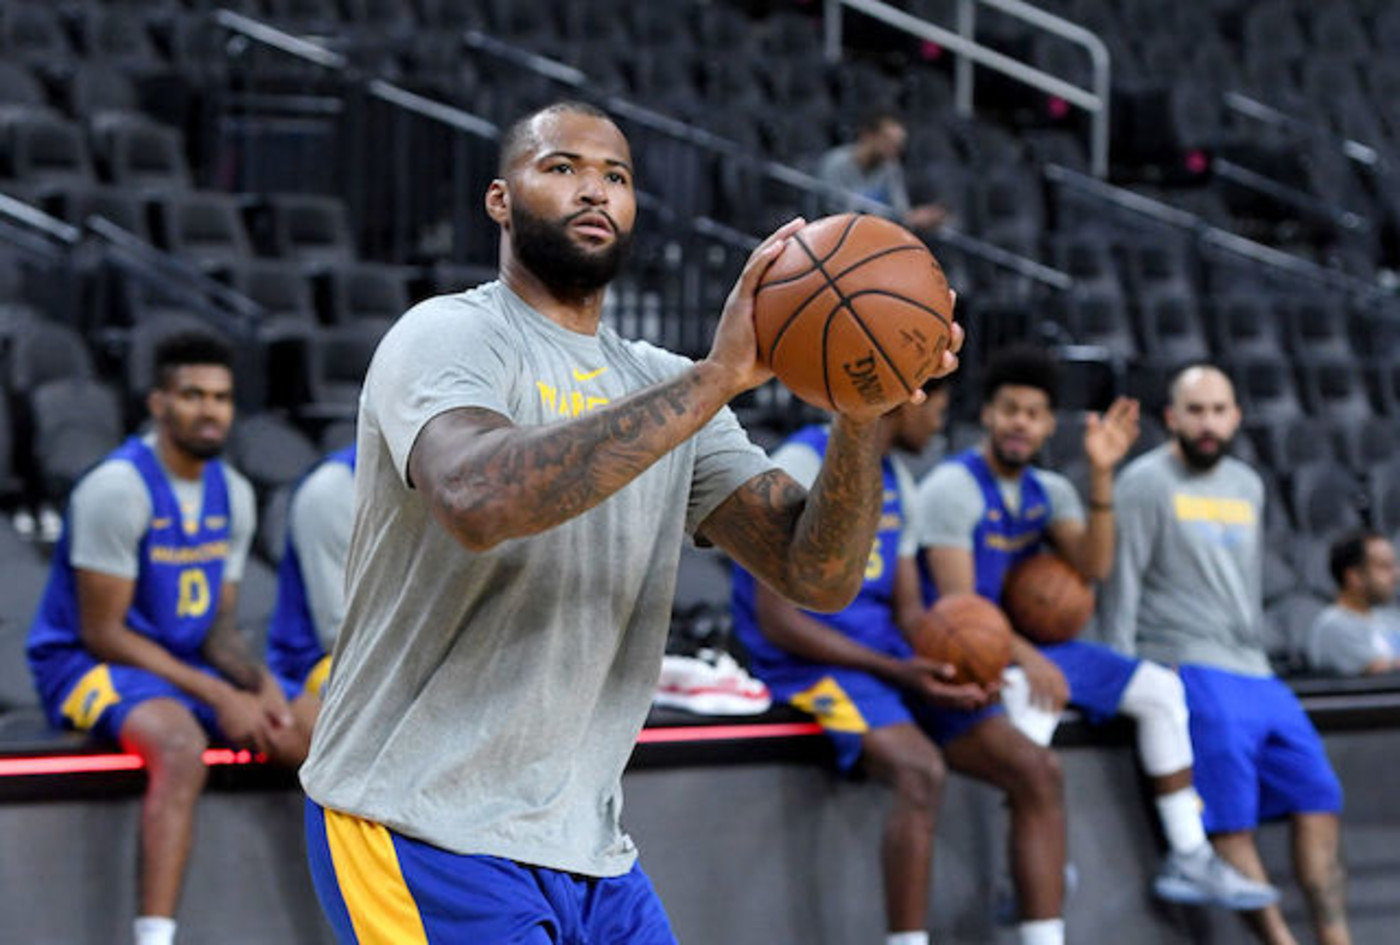 This is a picture of Demarcus Cousins.